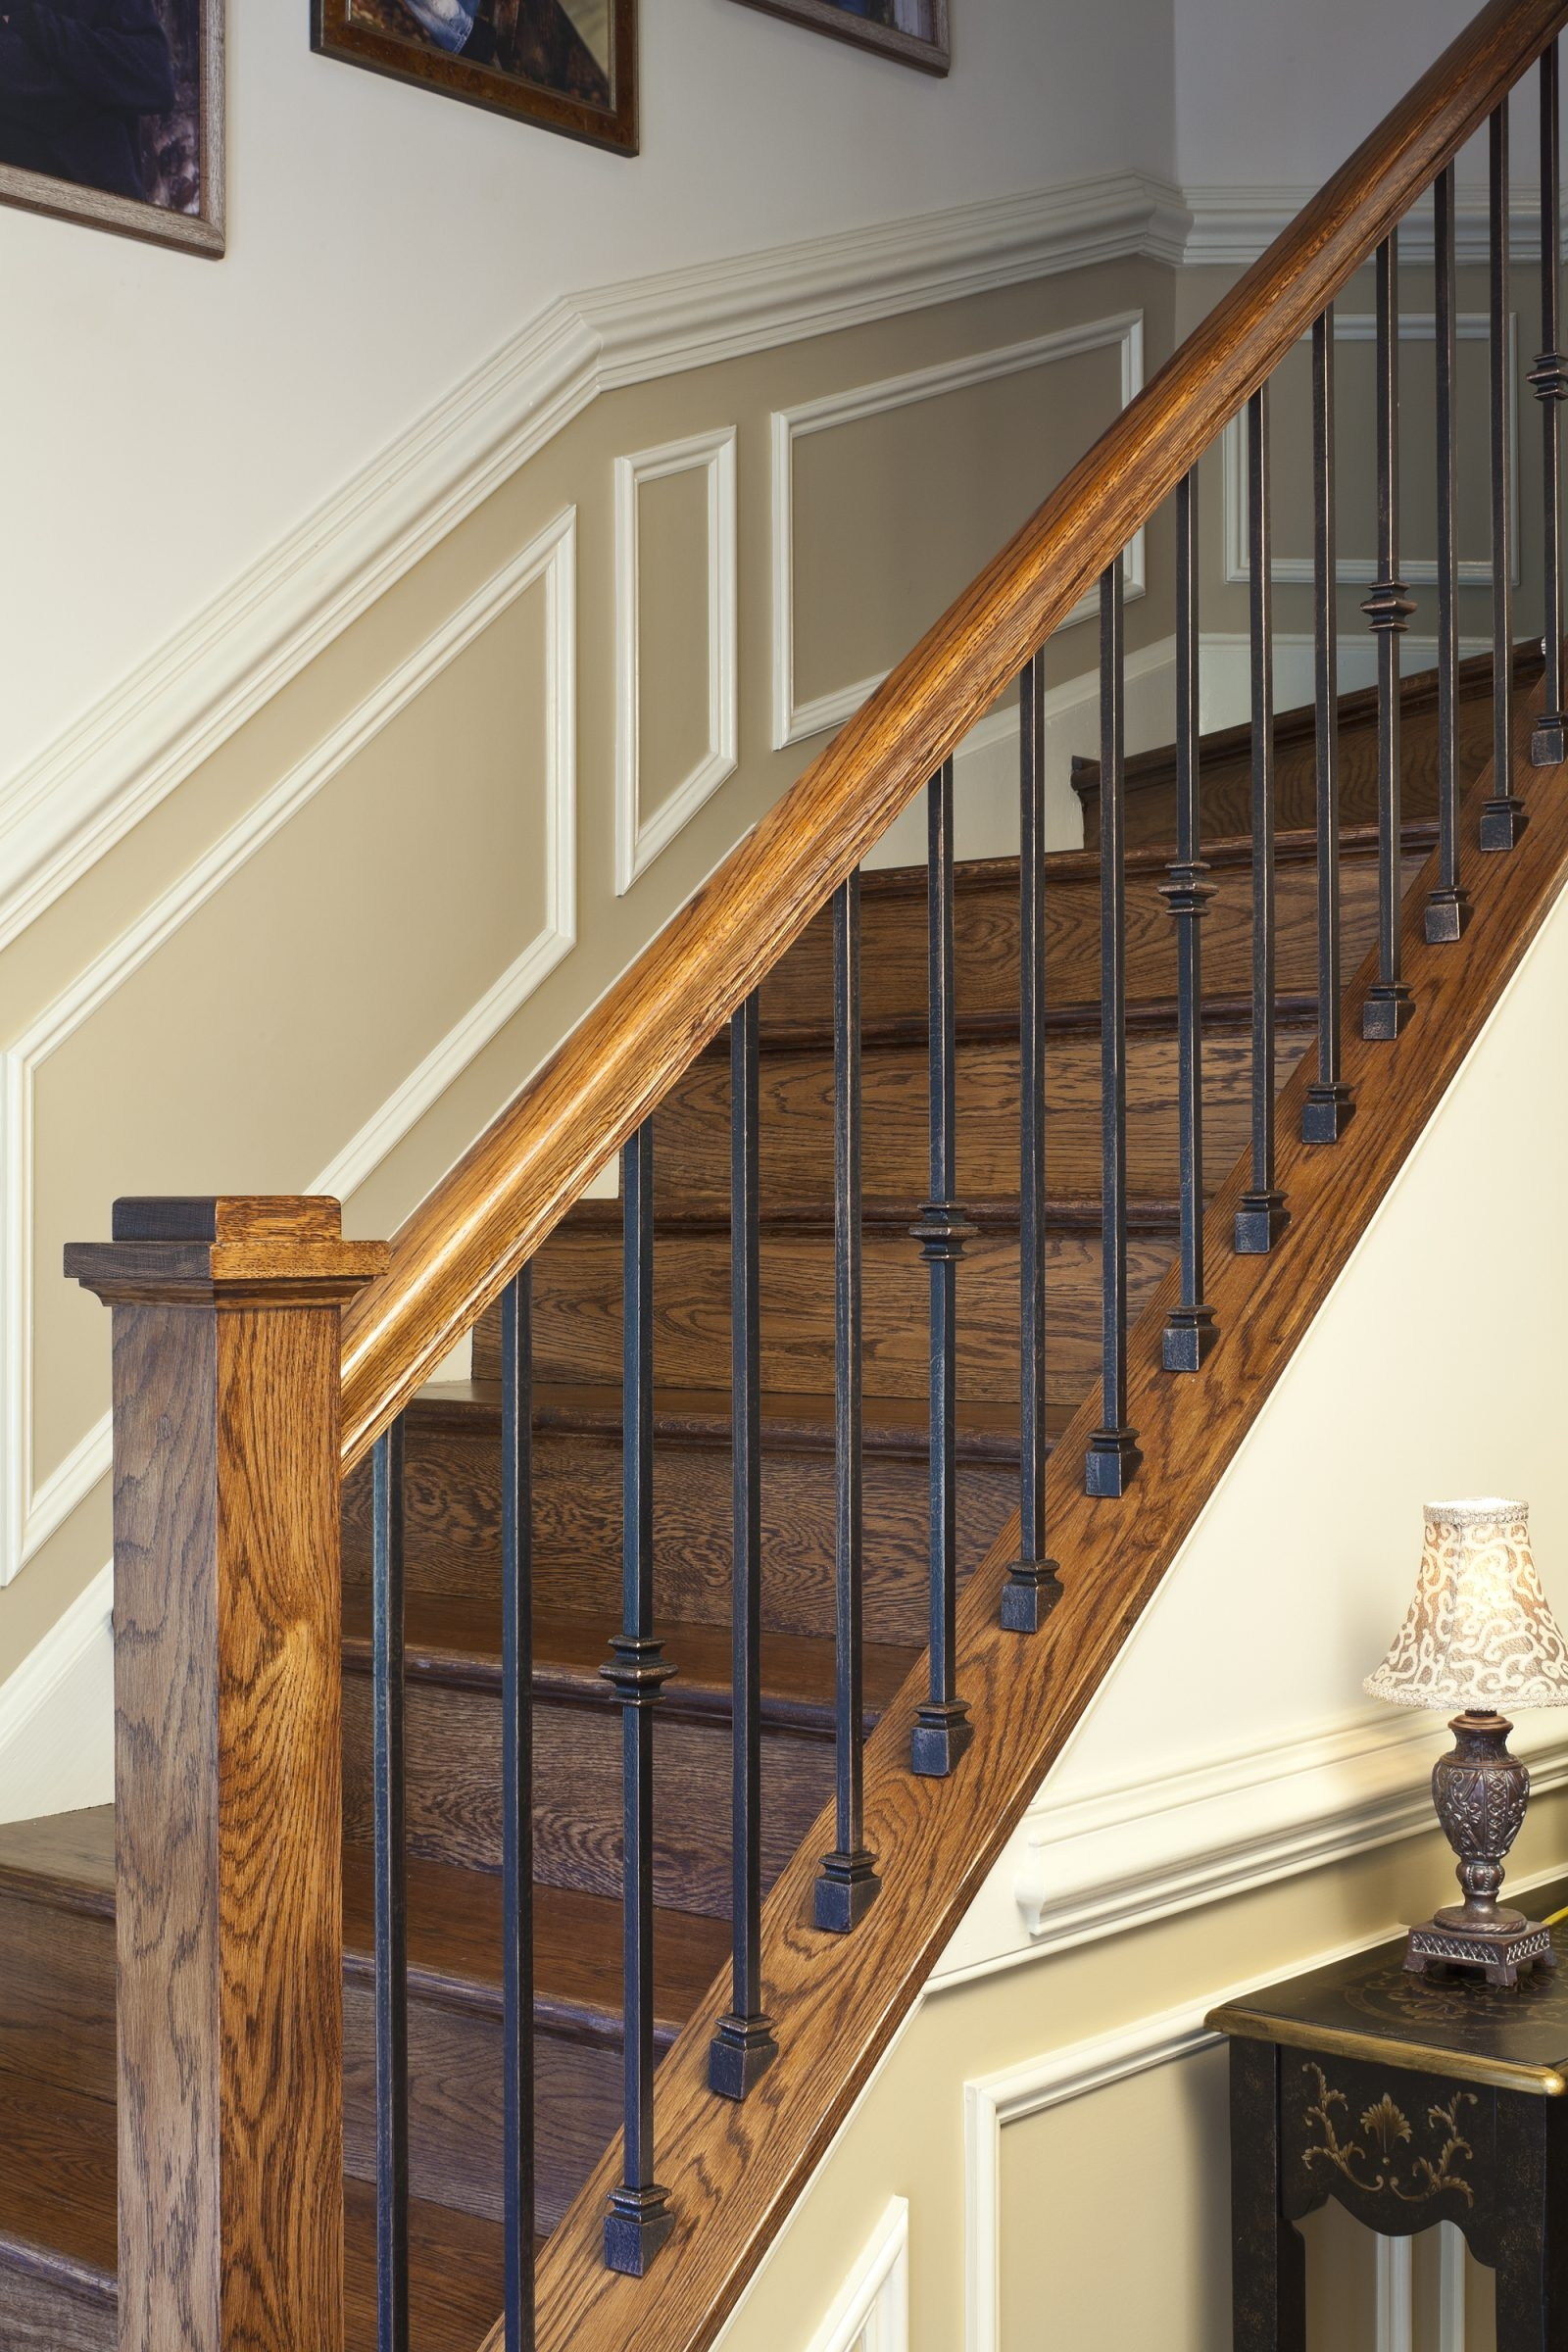 Staircase Design Ideas Owings Brothers Contracting | Traditional Staircase Designs For Homes | Antique | Nice | Low Cost | Entryway | Wonderful